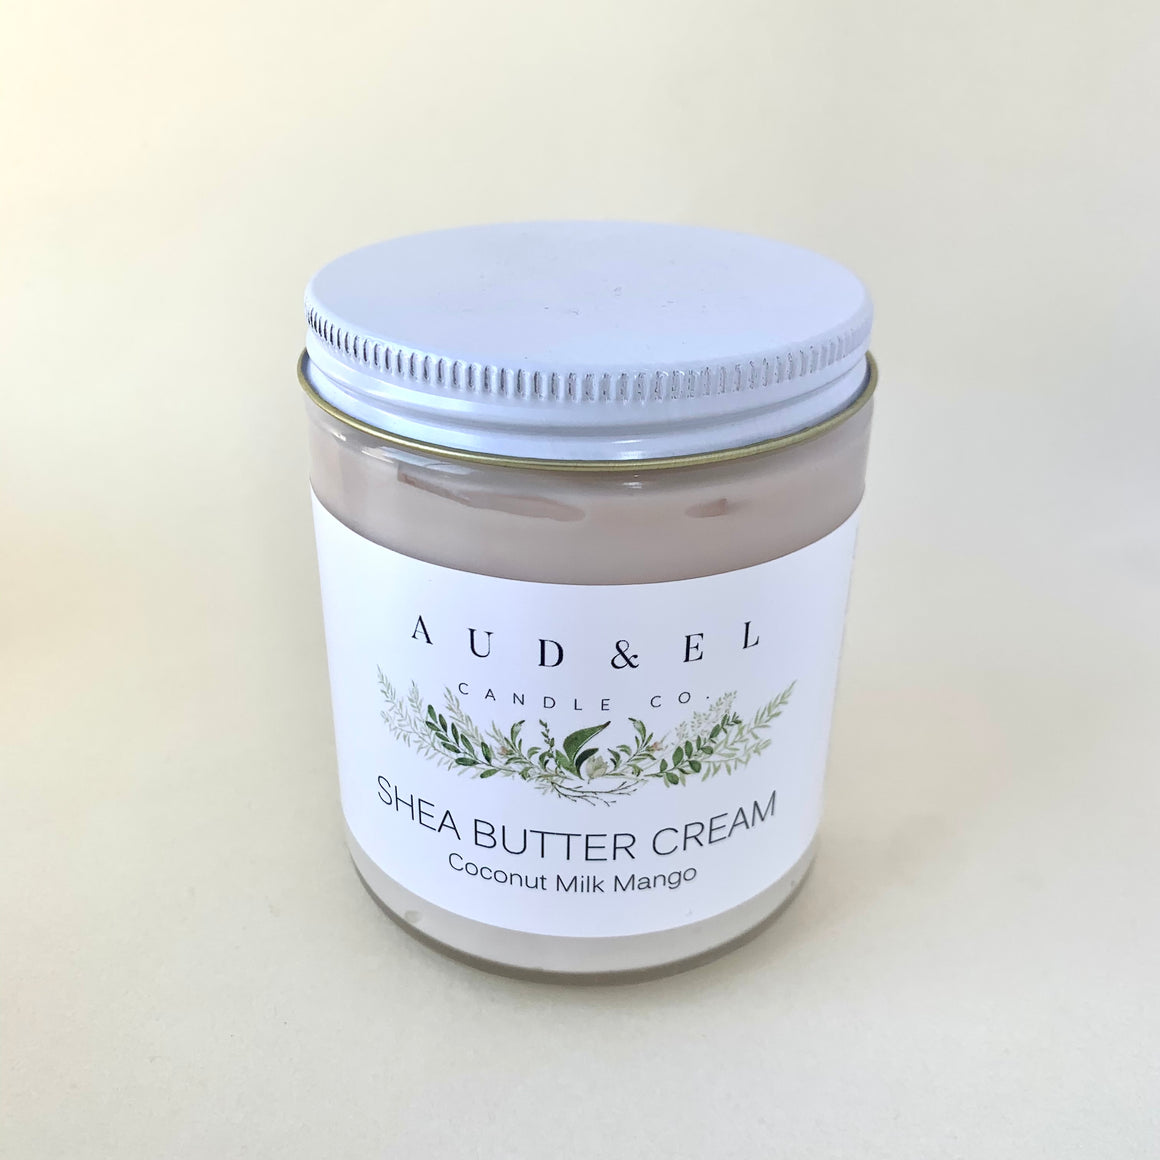 Aud & El - Shea Body Butter Cream